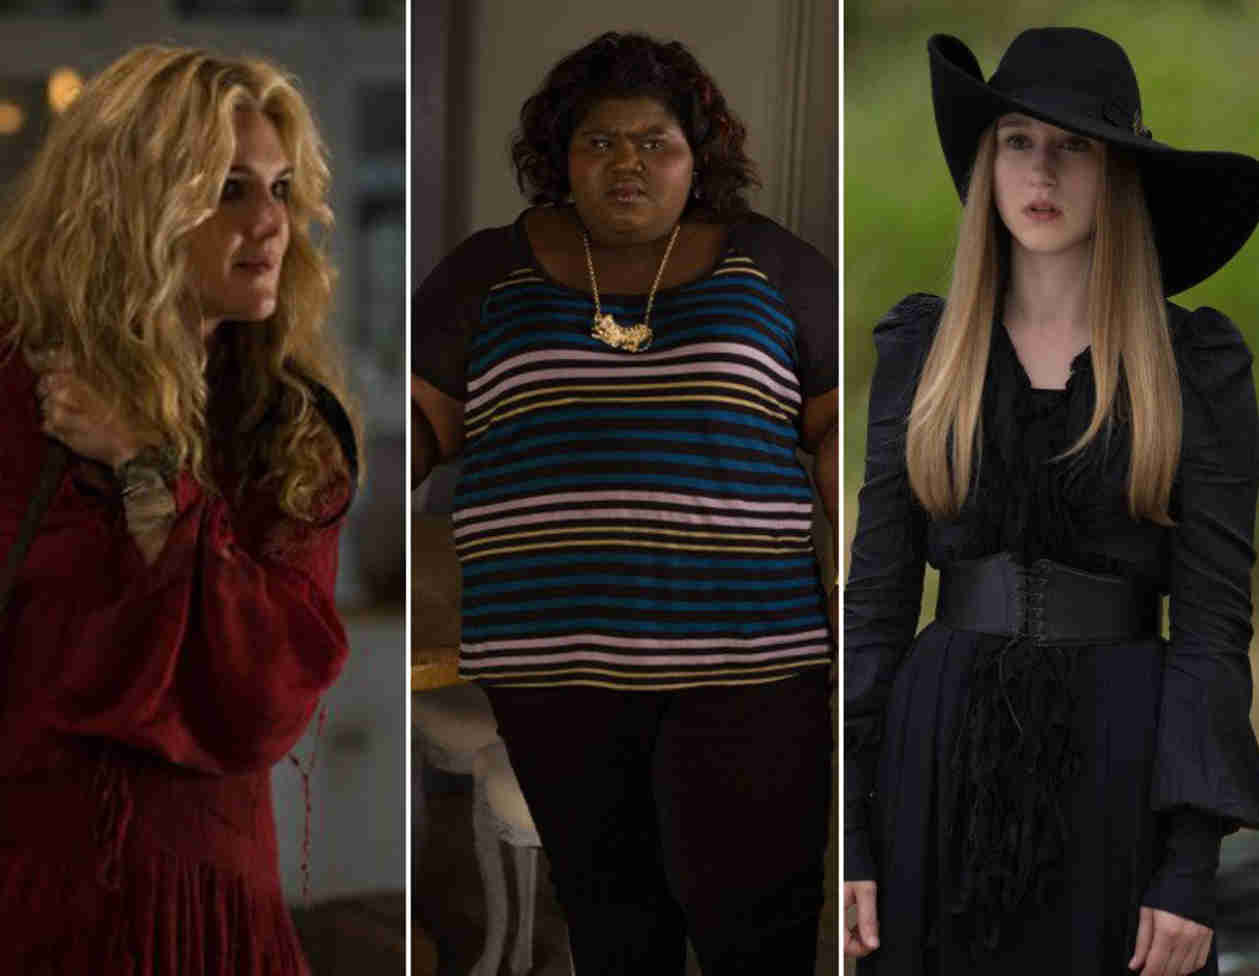 American Horror Story: Coven — Which Witch Should Be the Next Supreme?